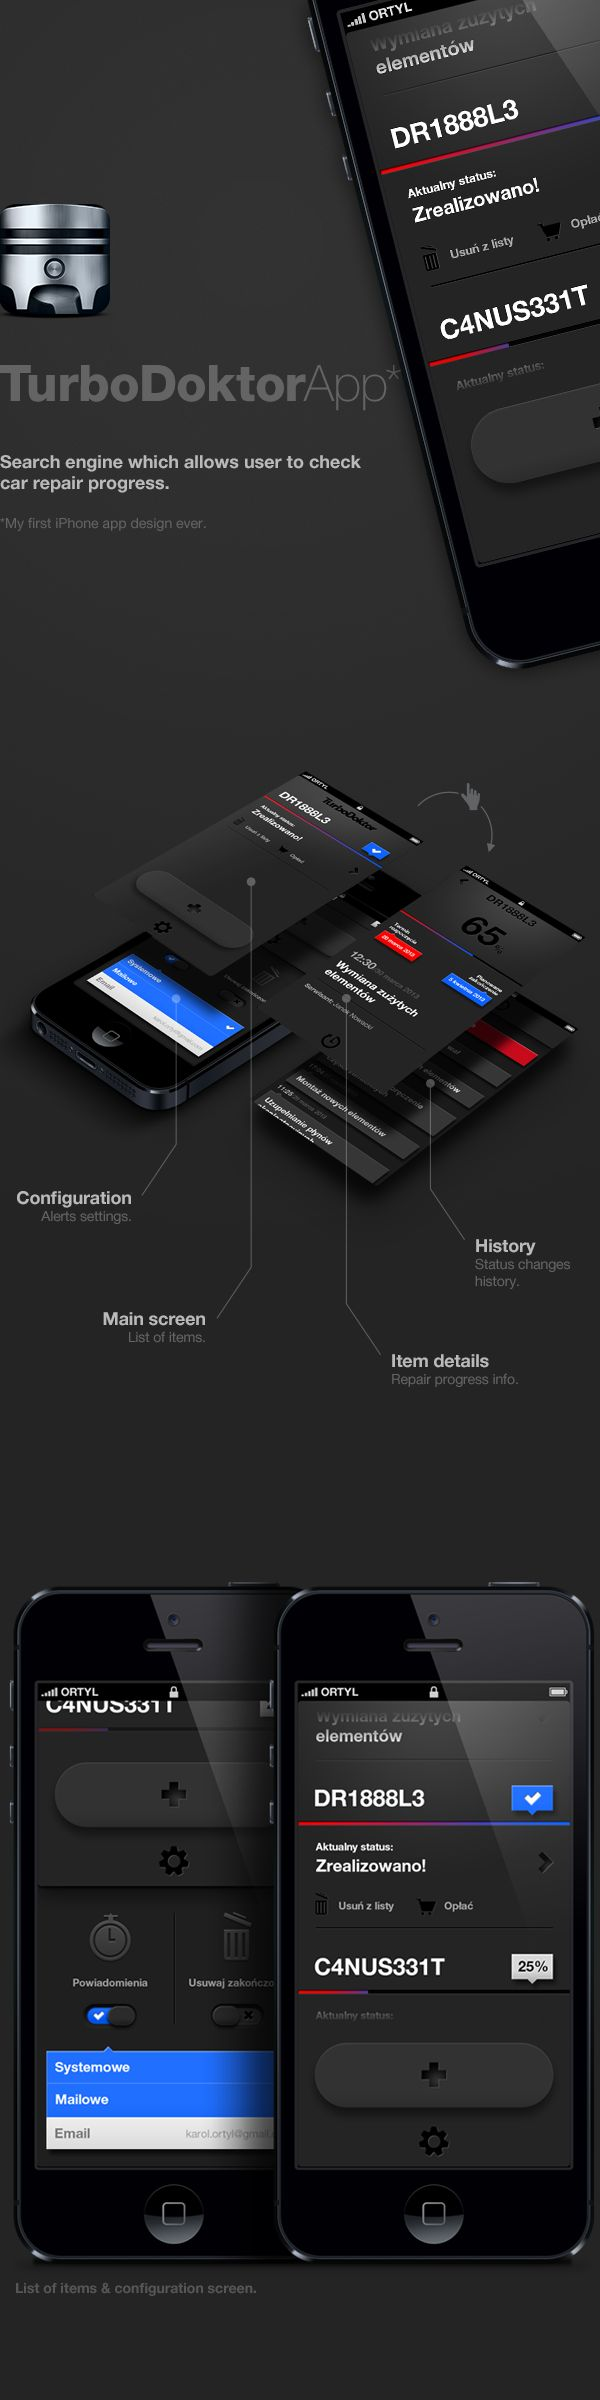 TurboDoktor - iPhone App on Behance *** #iphone #app #gui